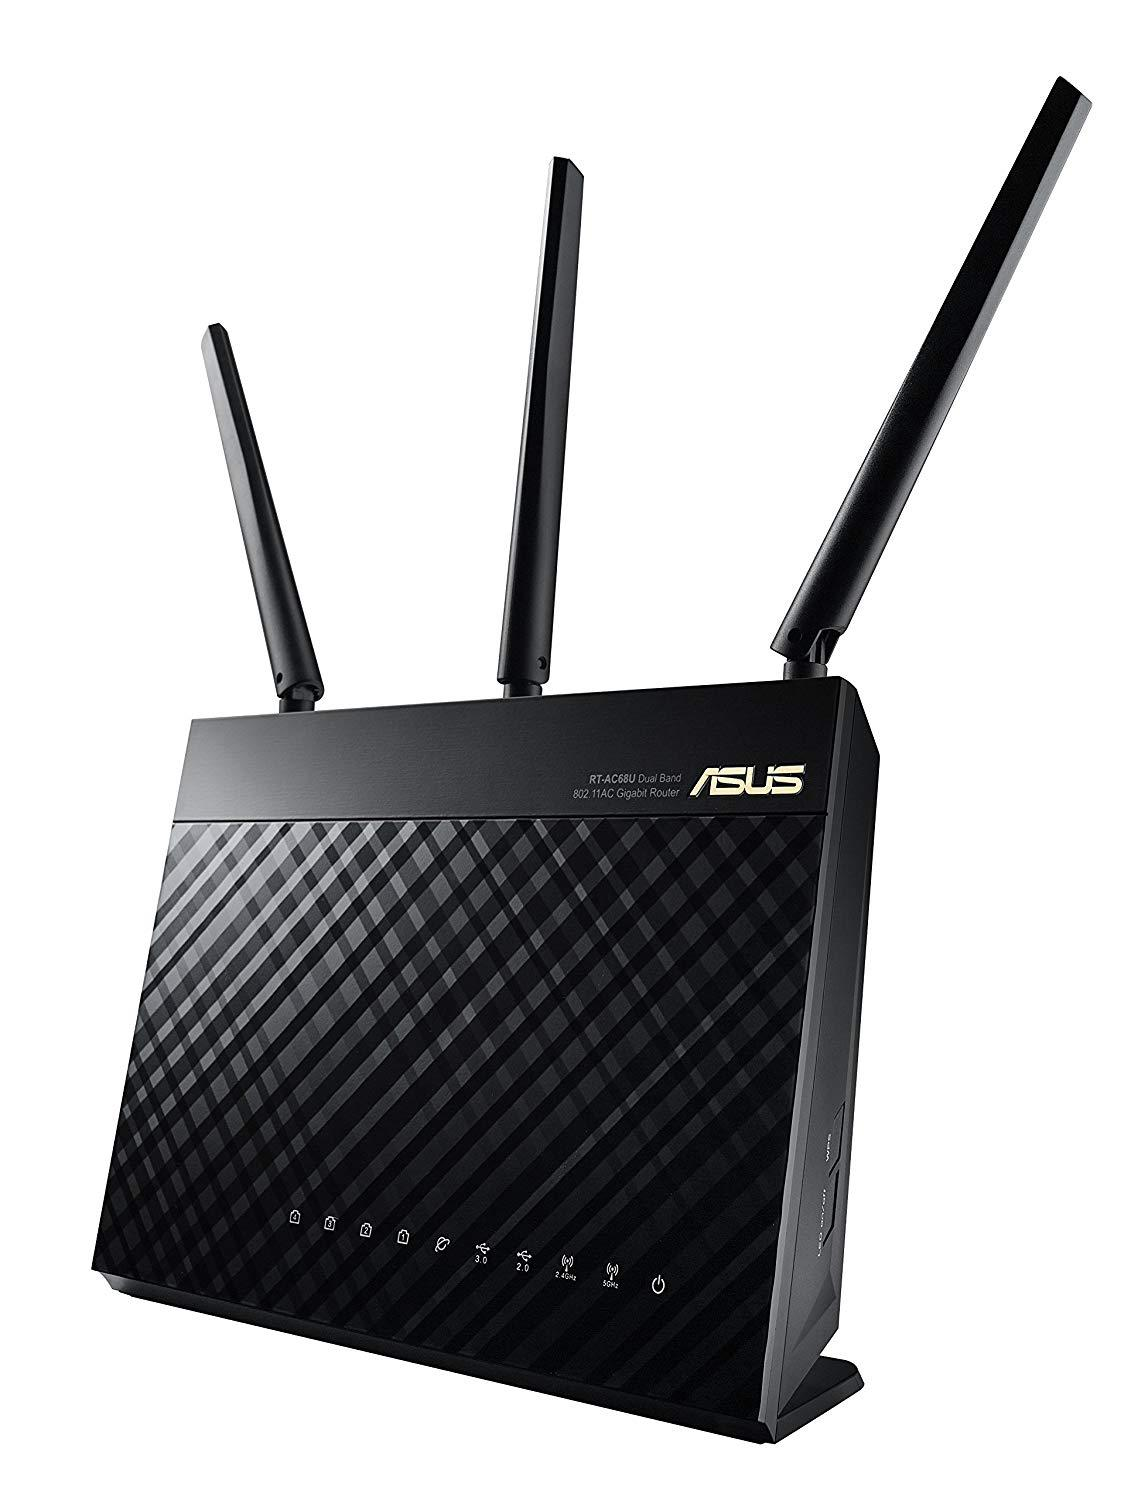 ASUS RT-AC68U Whole Home Dual-Band AiMesh WI-FI Router Upgradable Merlin AC1900 1900 Mbps AiProtection Network Security By Trend